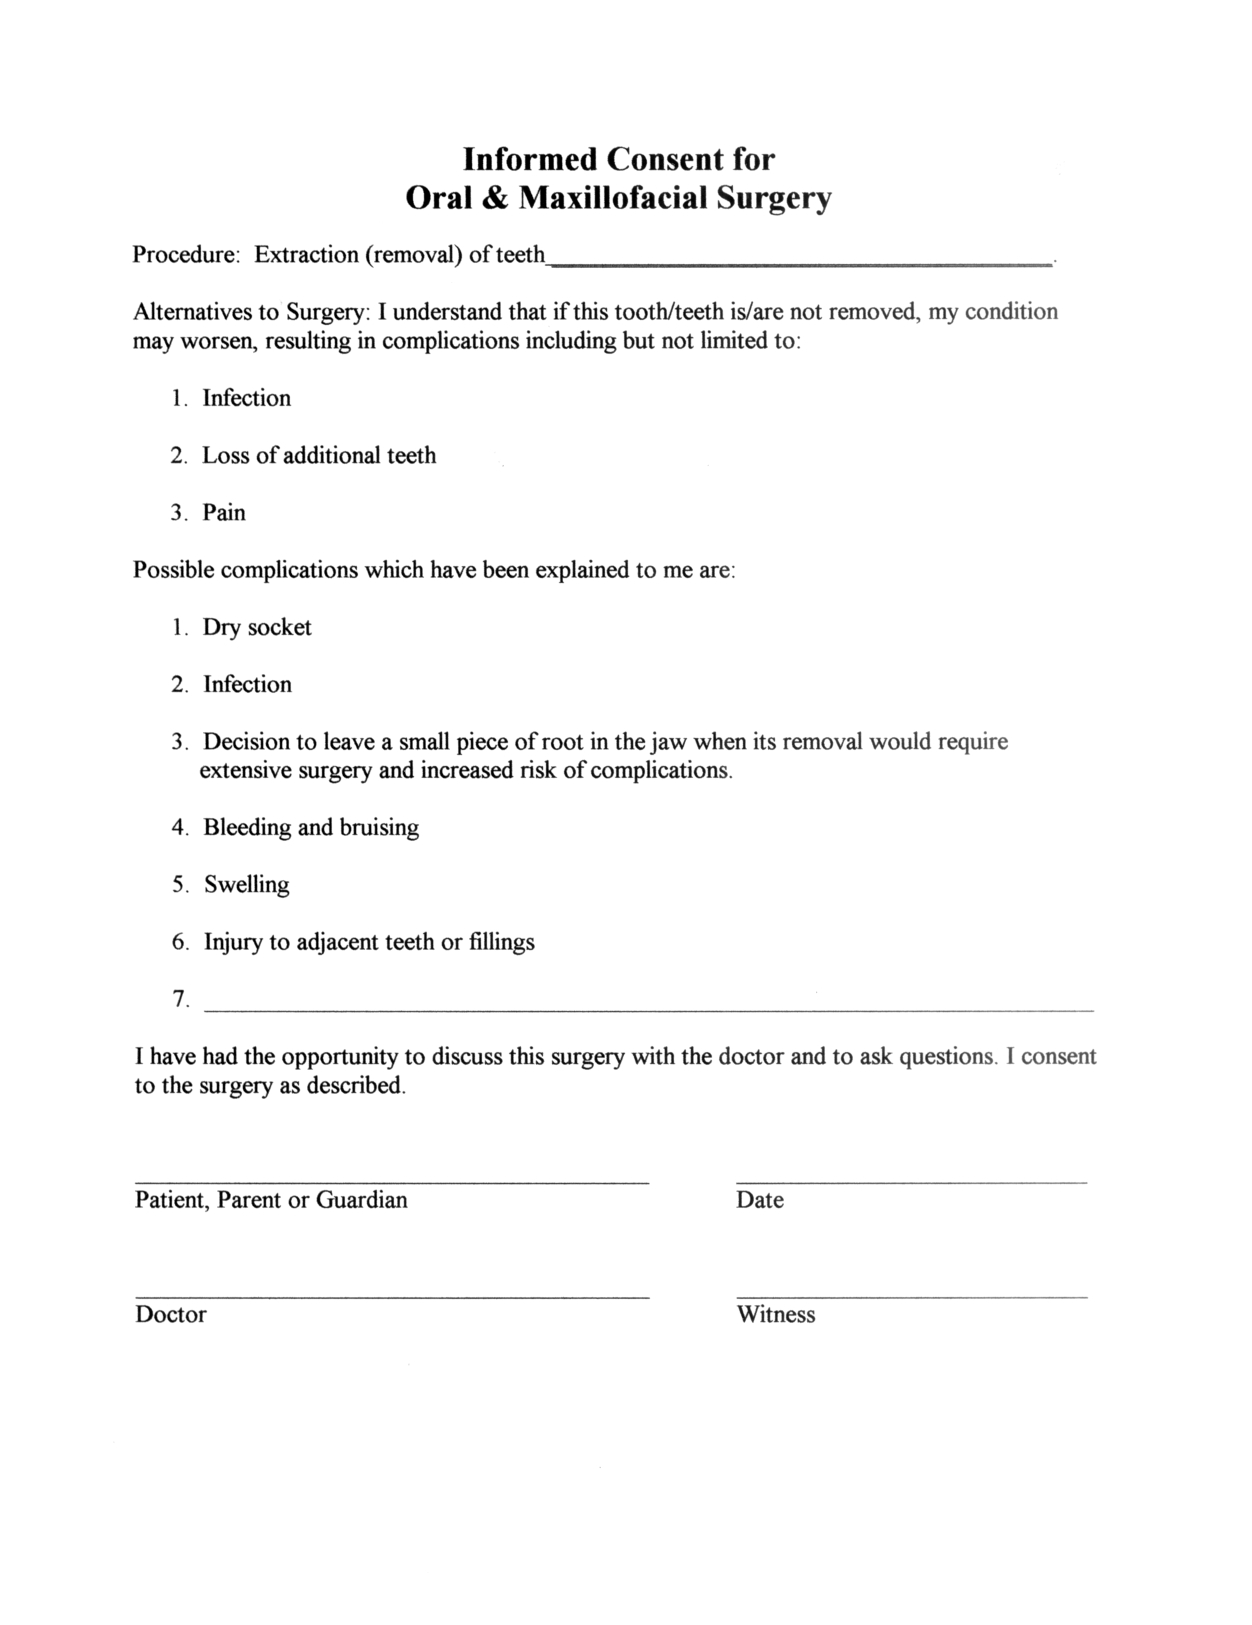 Medical Consent Letter Template - Surgery Informed Consent form Template Consent form